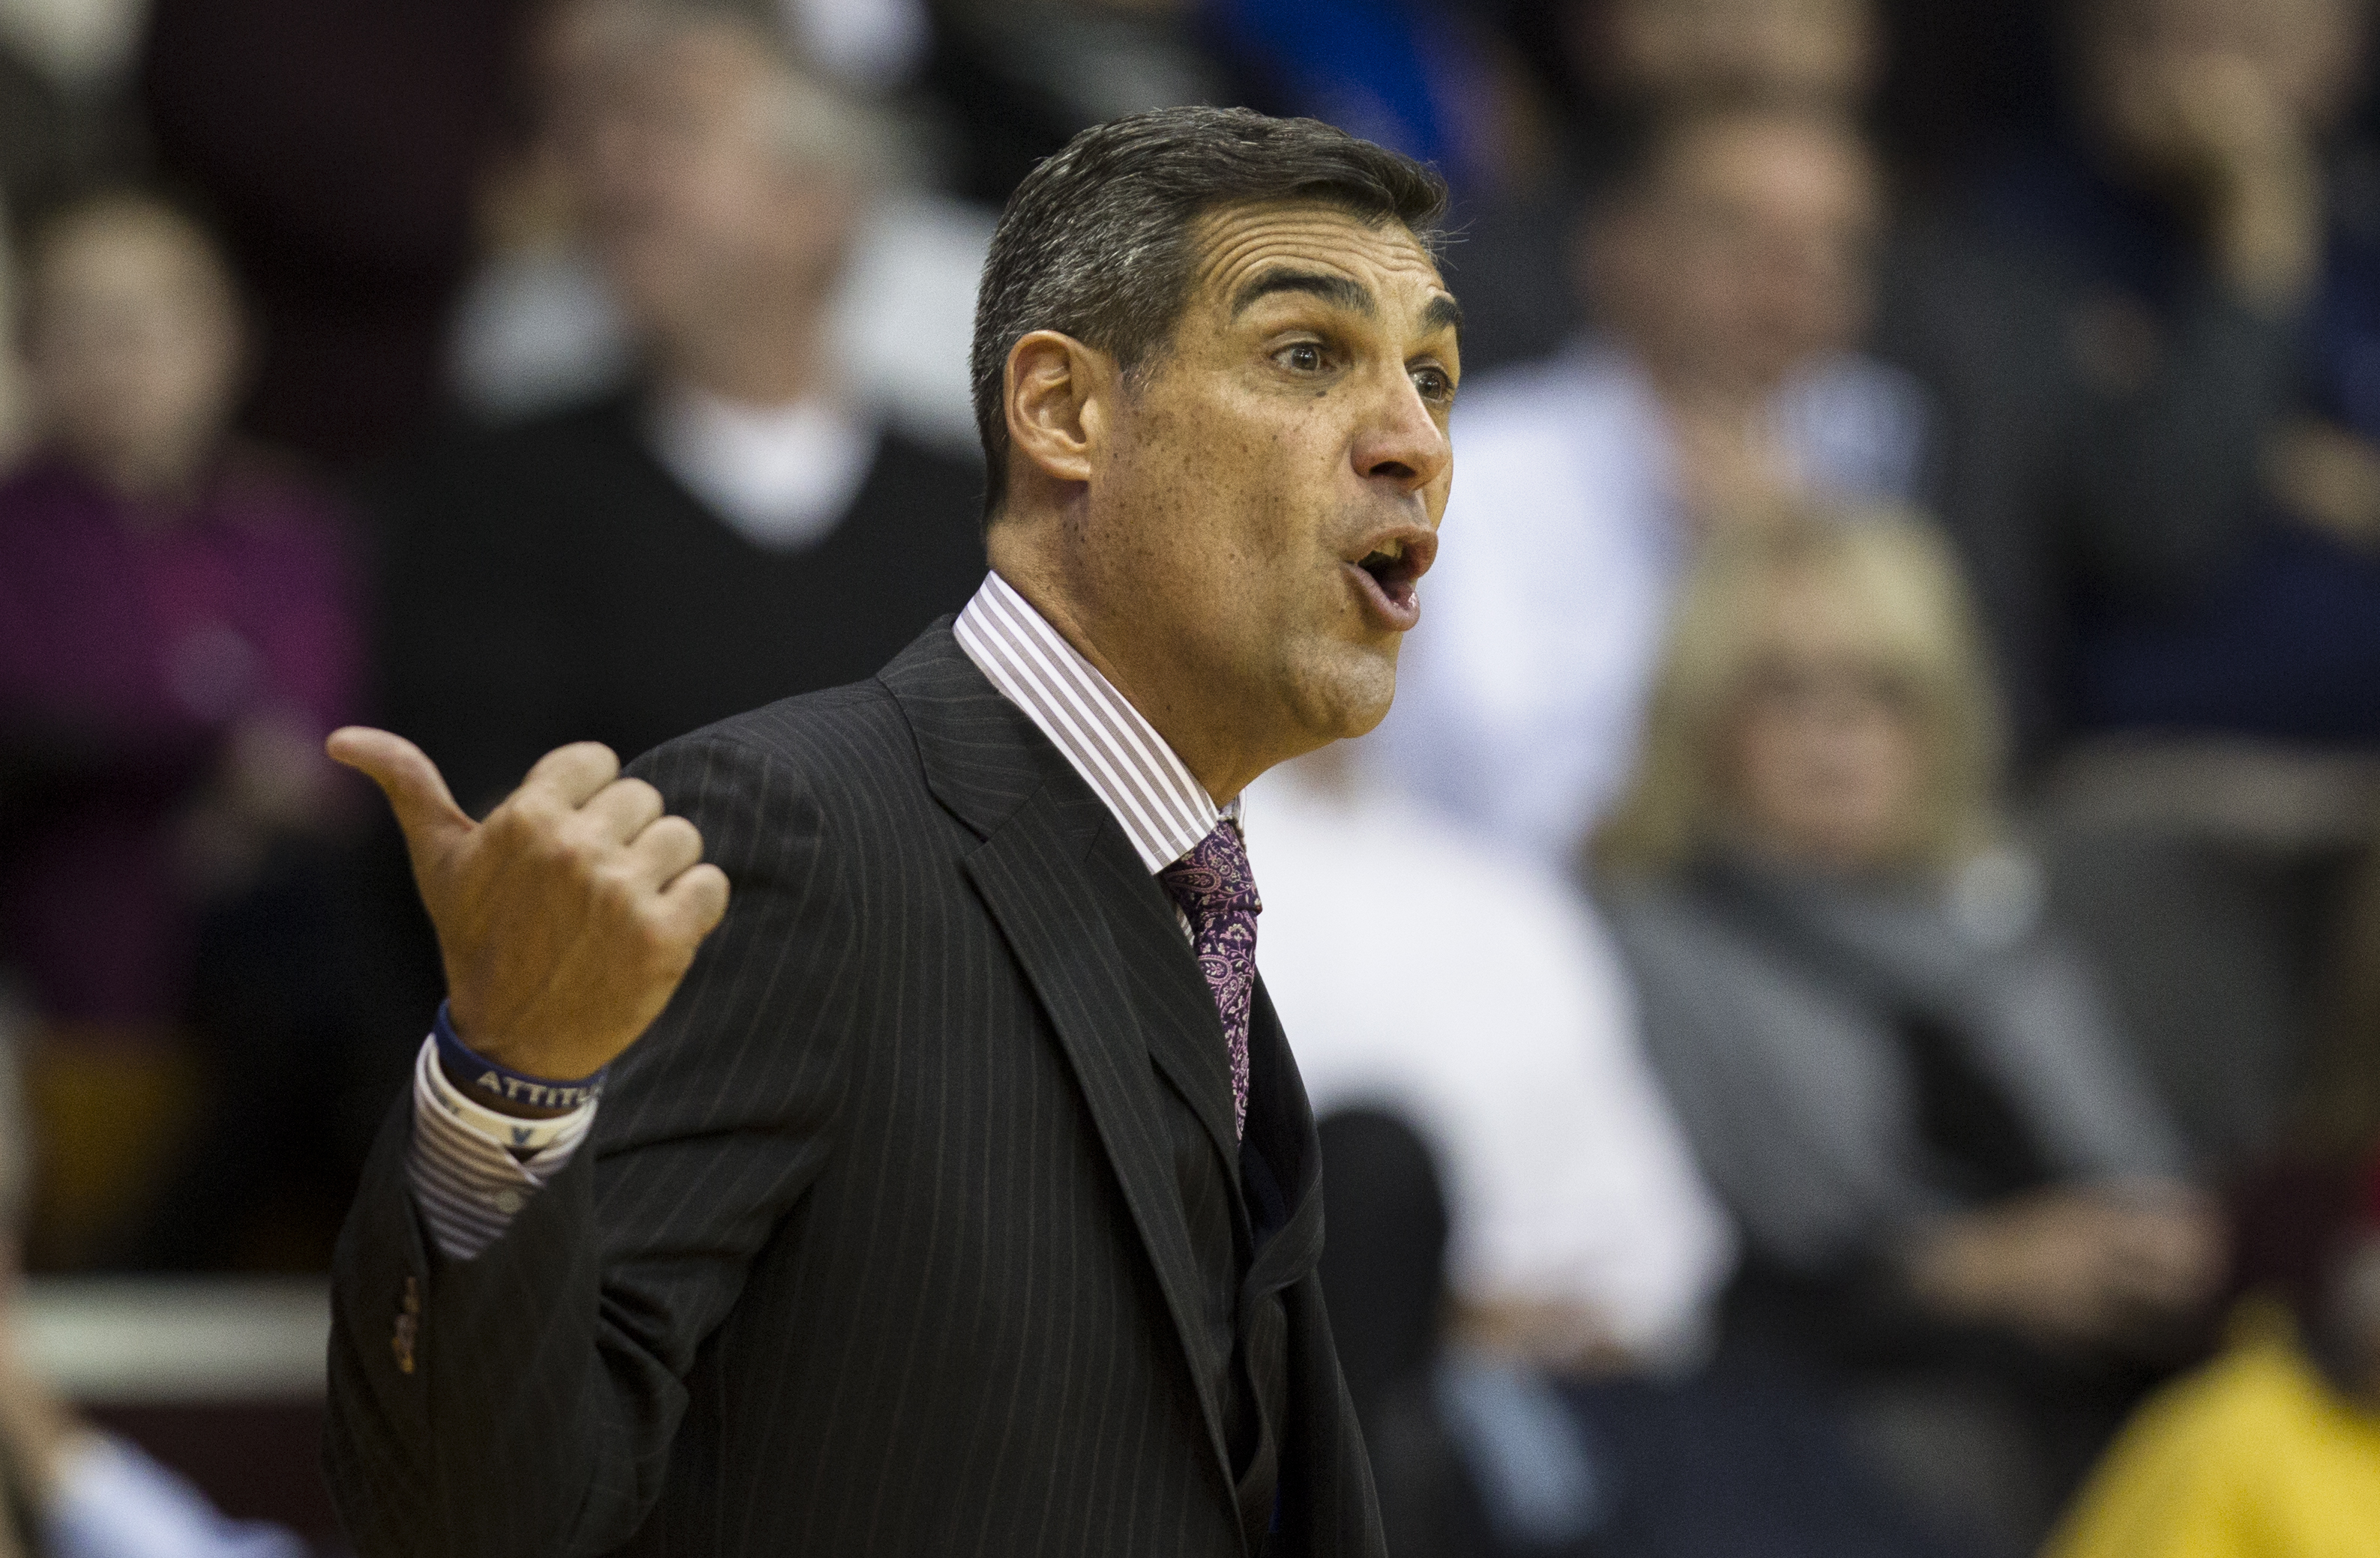 Villanova coach Jay Wright shouts from the bench in the first half of an NCAA college basketball game against Nebraska, Tuesday, Nov. 17, 2015, in Villanova, Pa. (AP Photo/Laurence Kesterson)